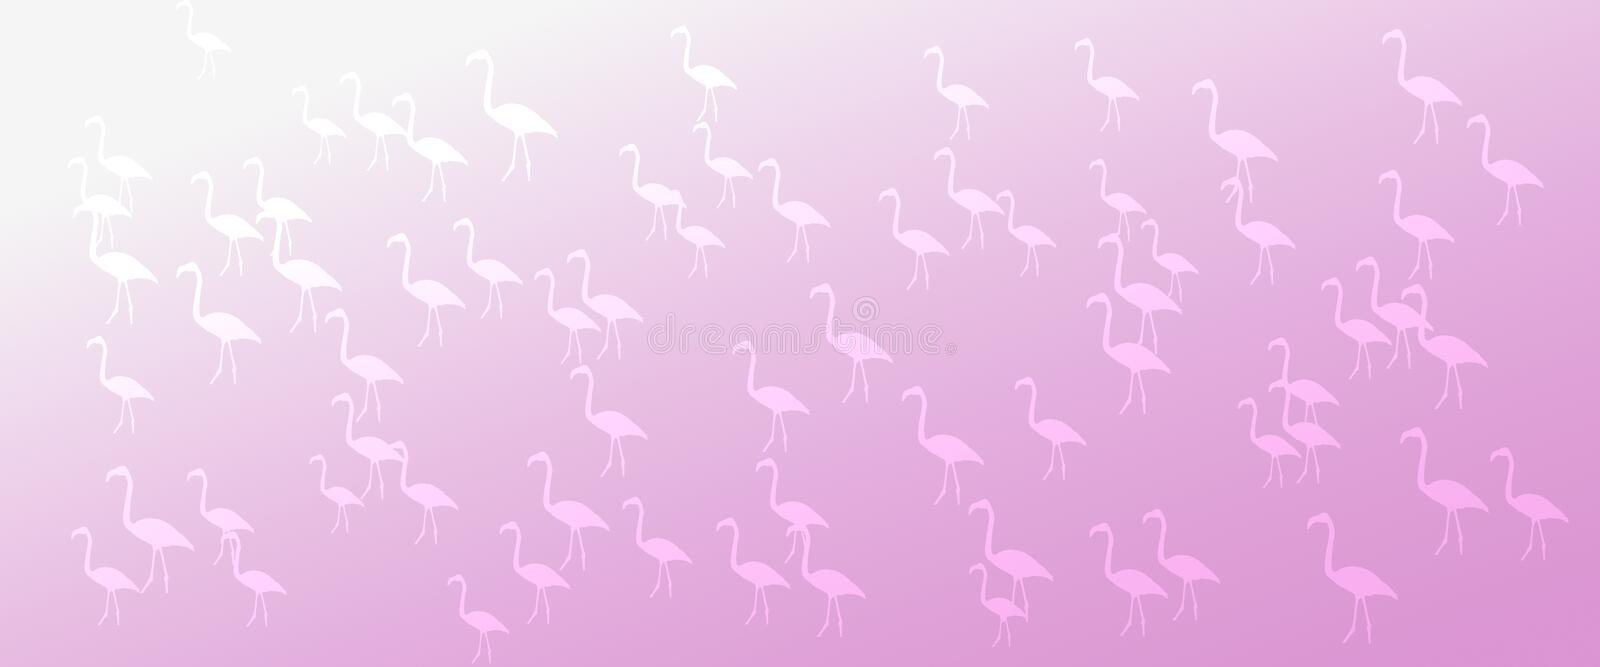 Header Background Pink Gradient Flamingo Birds Pattern. For websites, webpages , posters, banners, letterheads, presentations, logos, icons, designing royalty free stock image